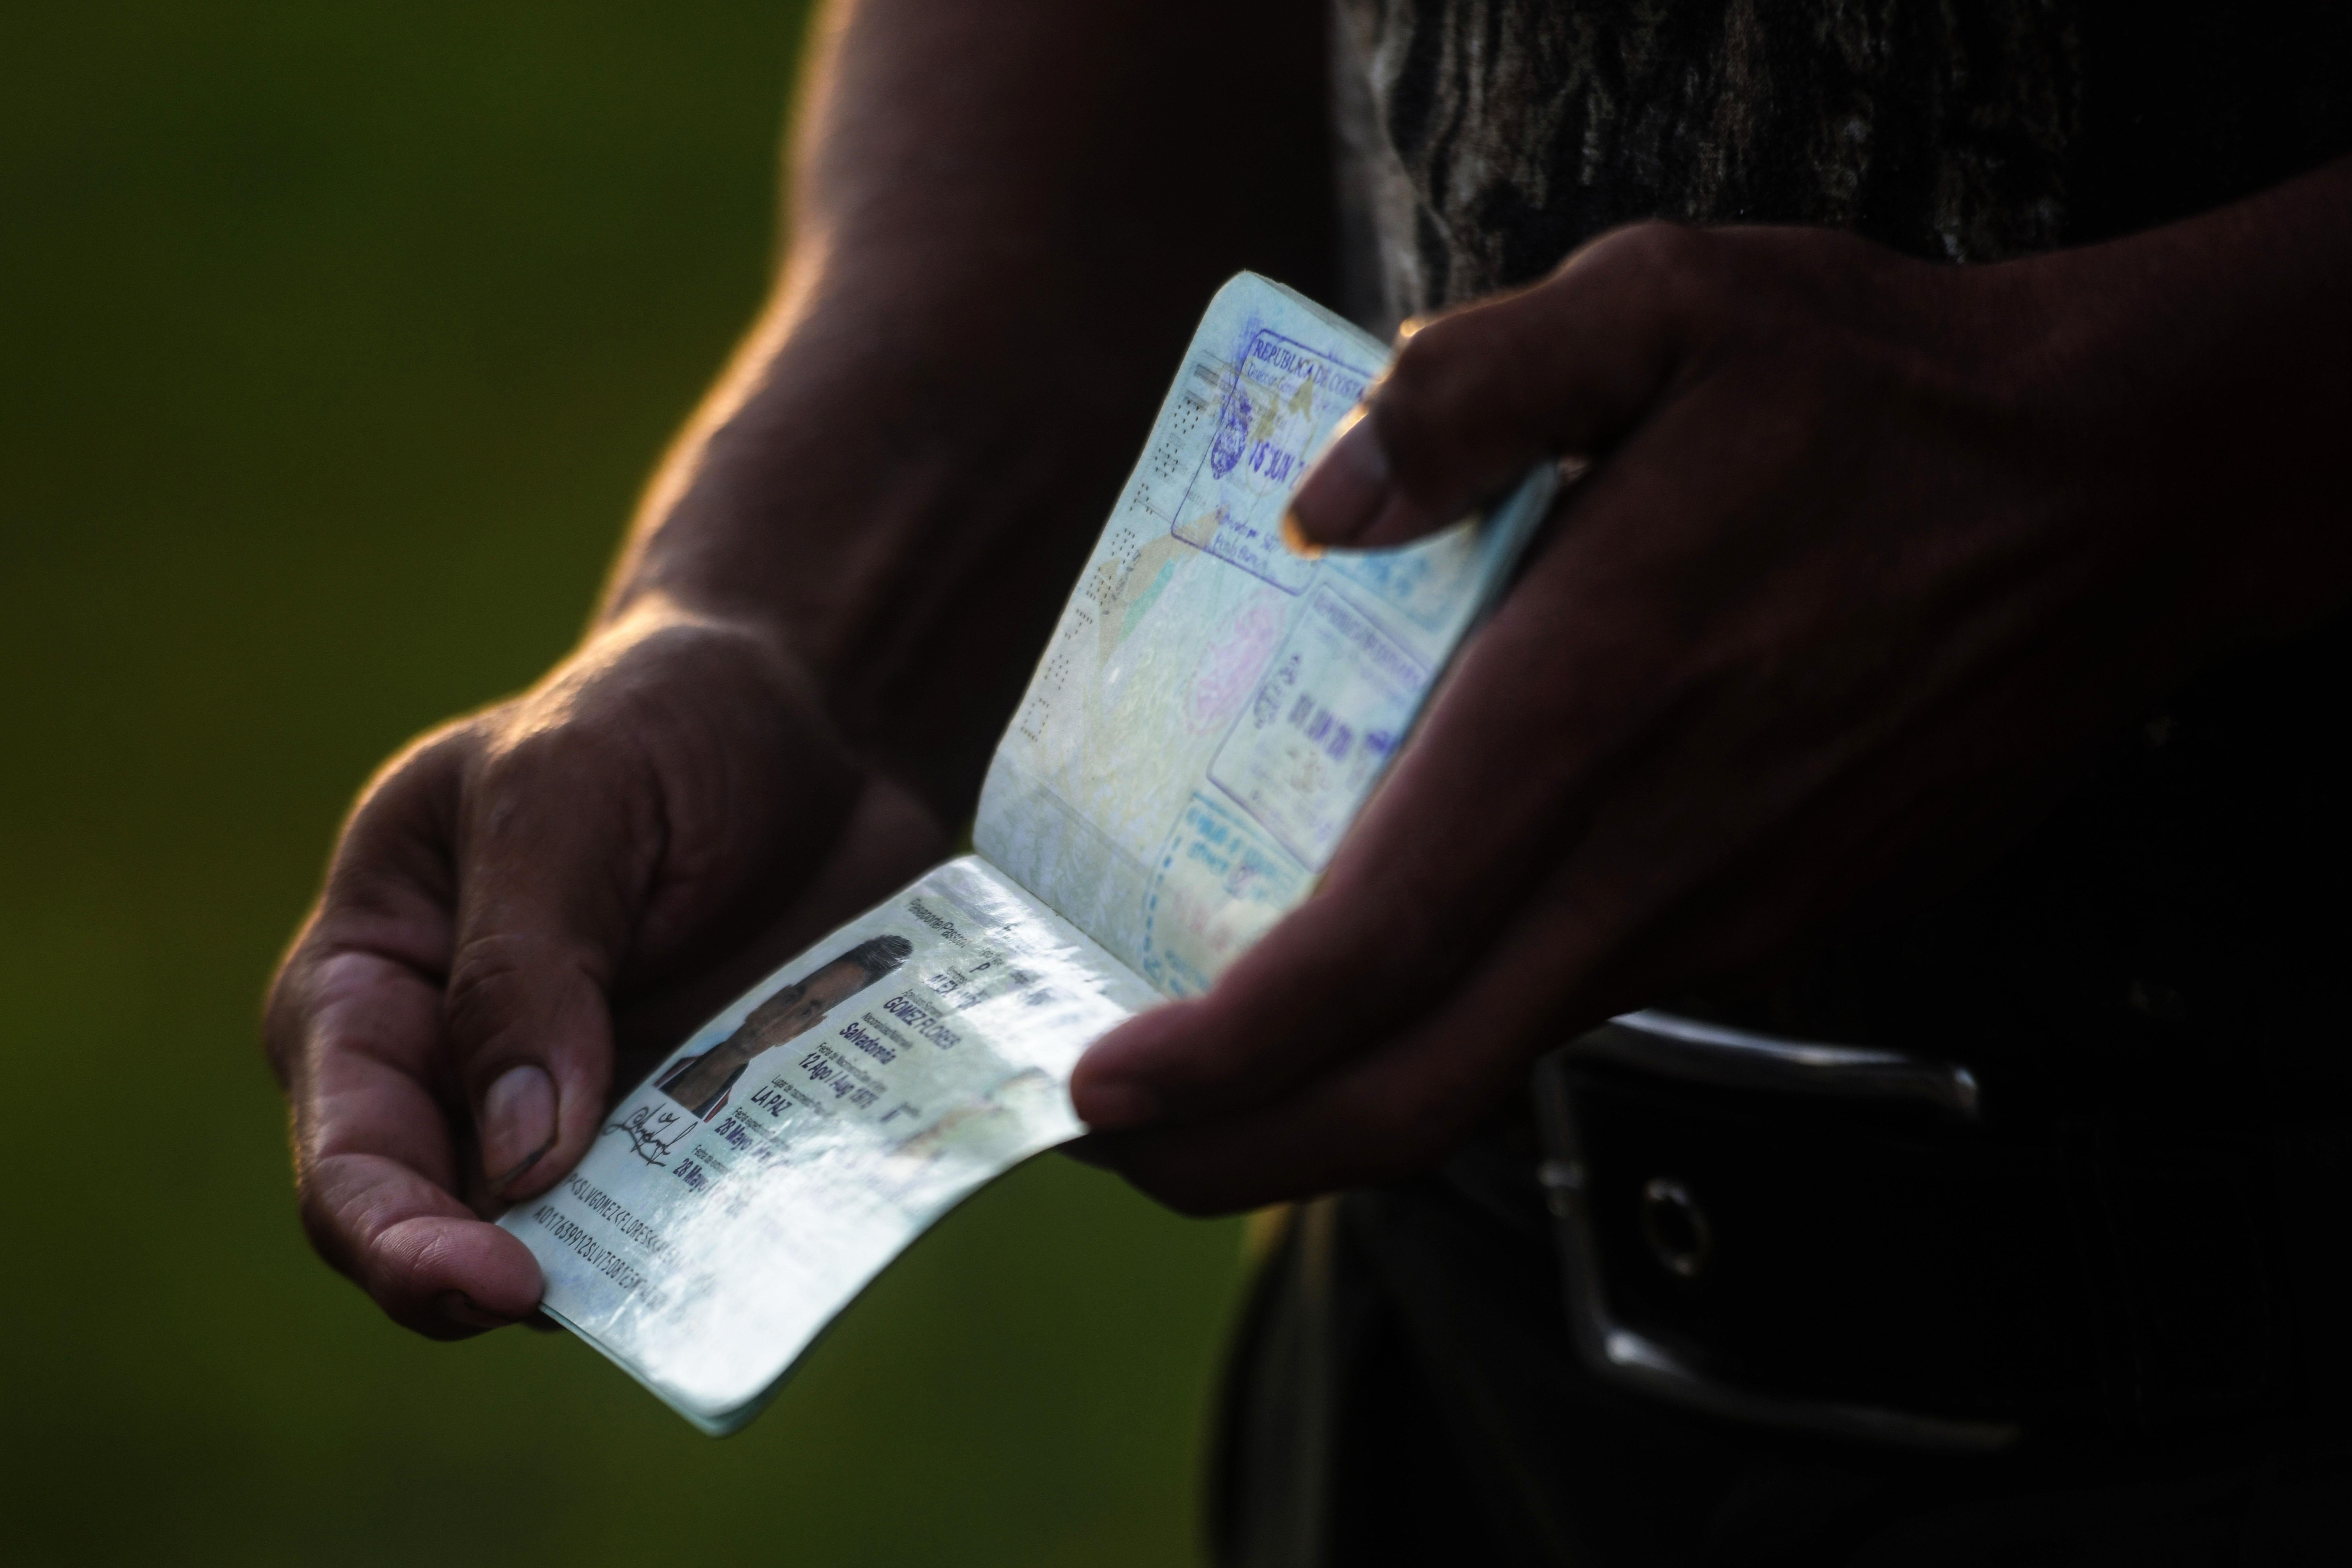 A Salvadoran migrant shows his passport as he gathers in a caravan in San Salvador to start a journey towards the U.S. on Oct. 28, 2018.